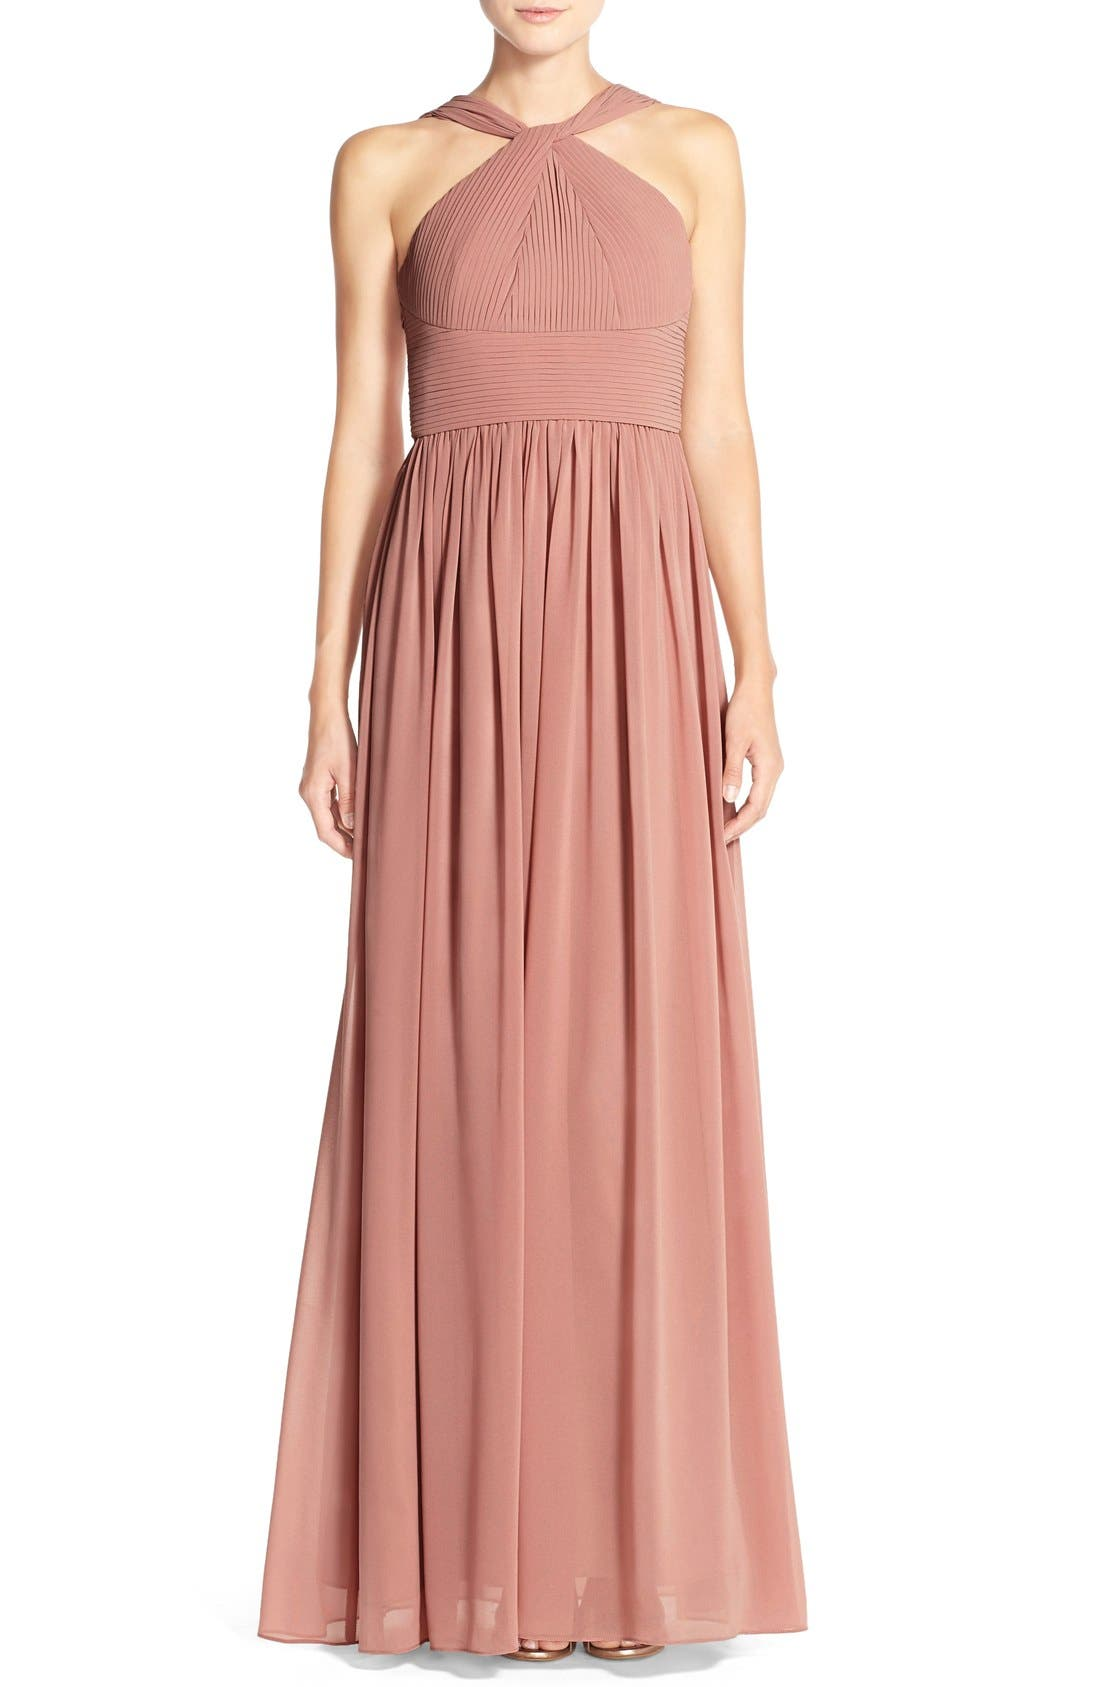 Alternate Image 1 Selected - DonnaMorgan 'Hayley' Halter Style Pleat Chiffon Gown